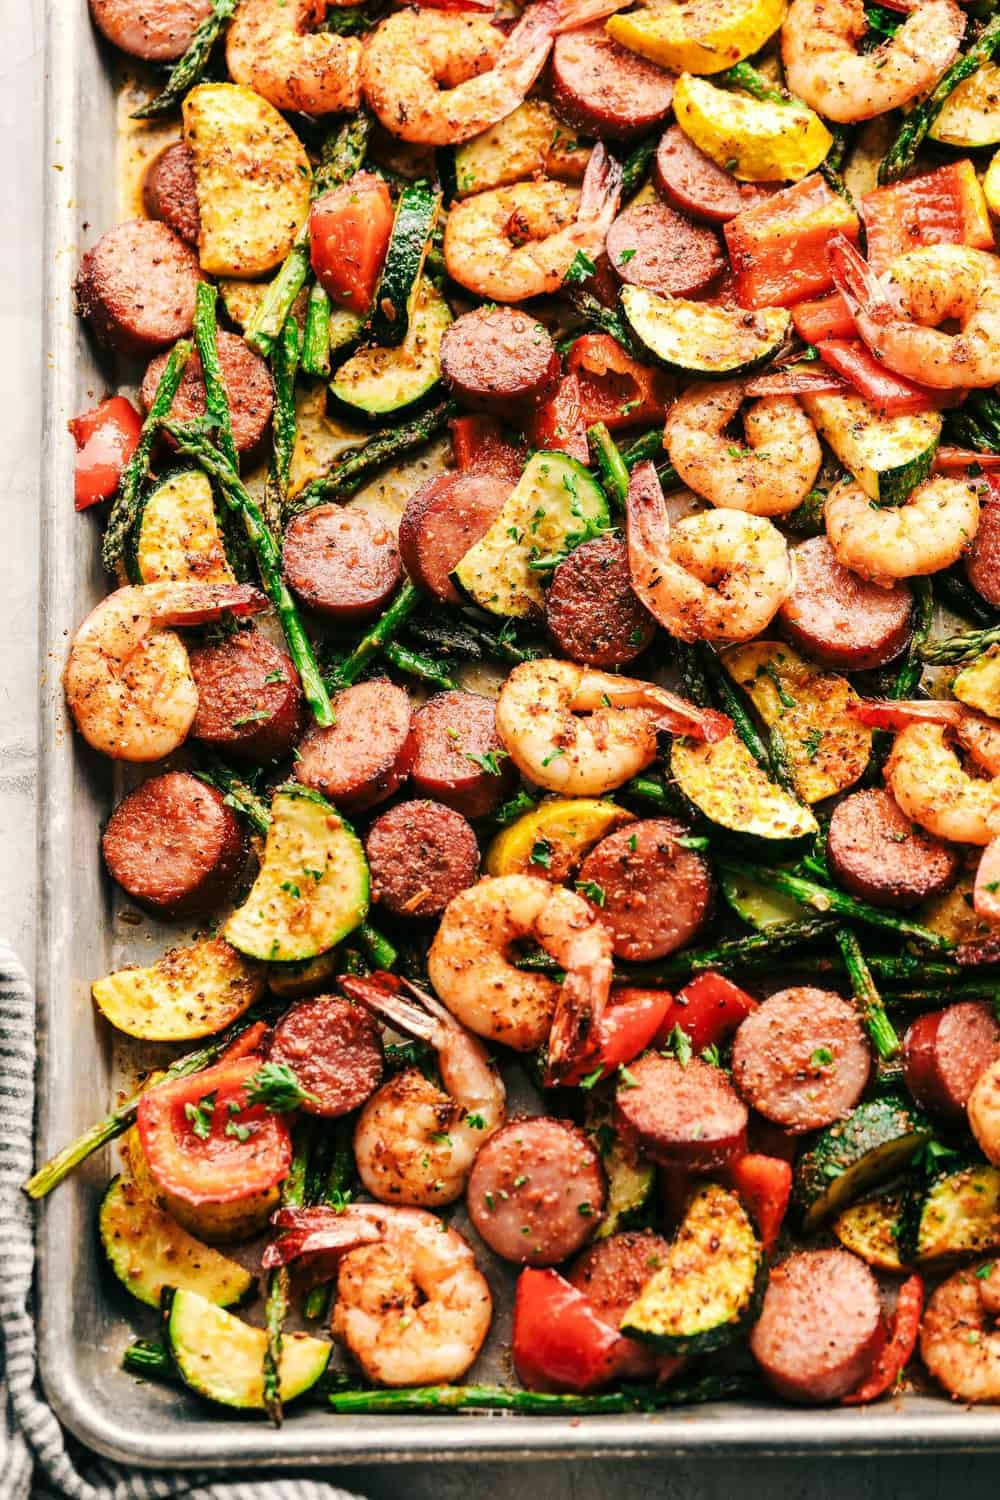 Cajun Shrimp and Sausage Vegetable Sheet Pan